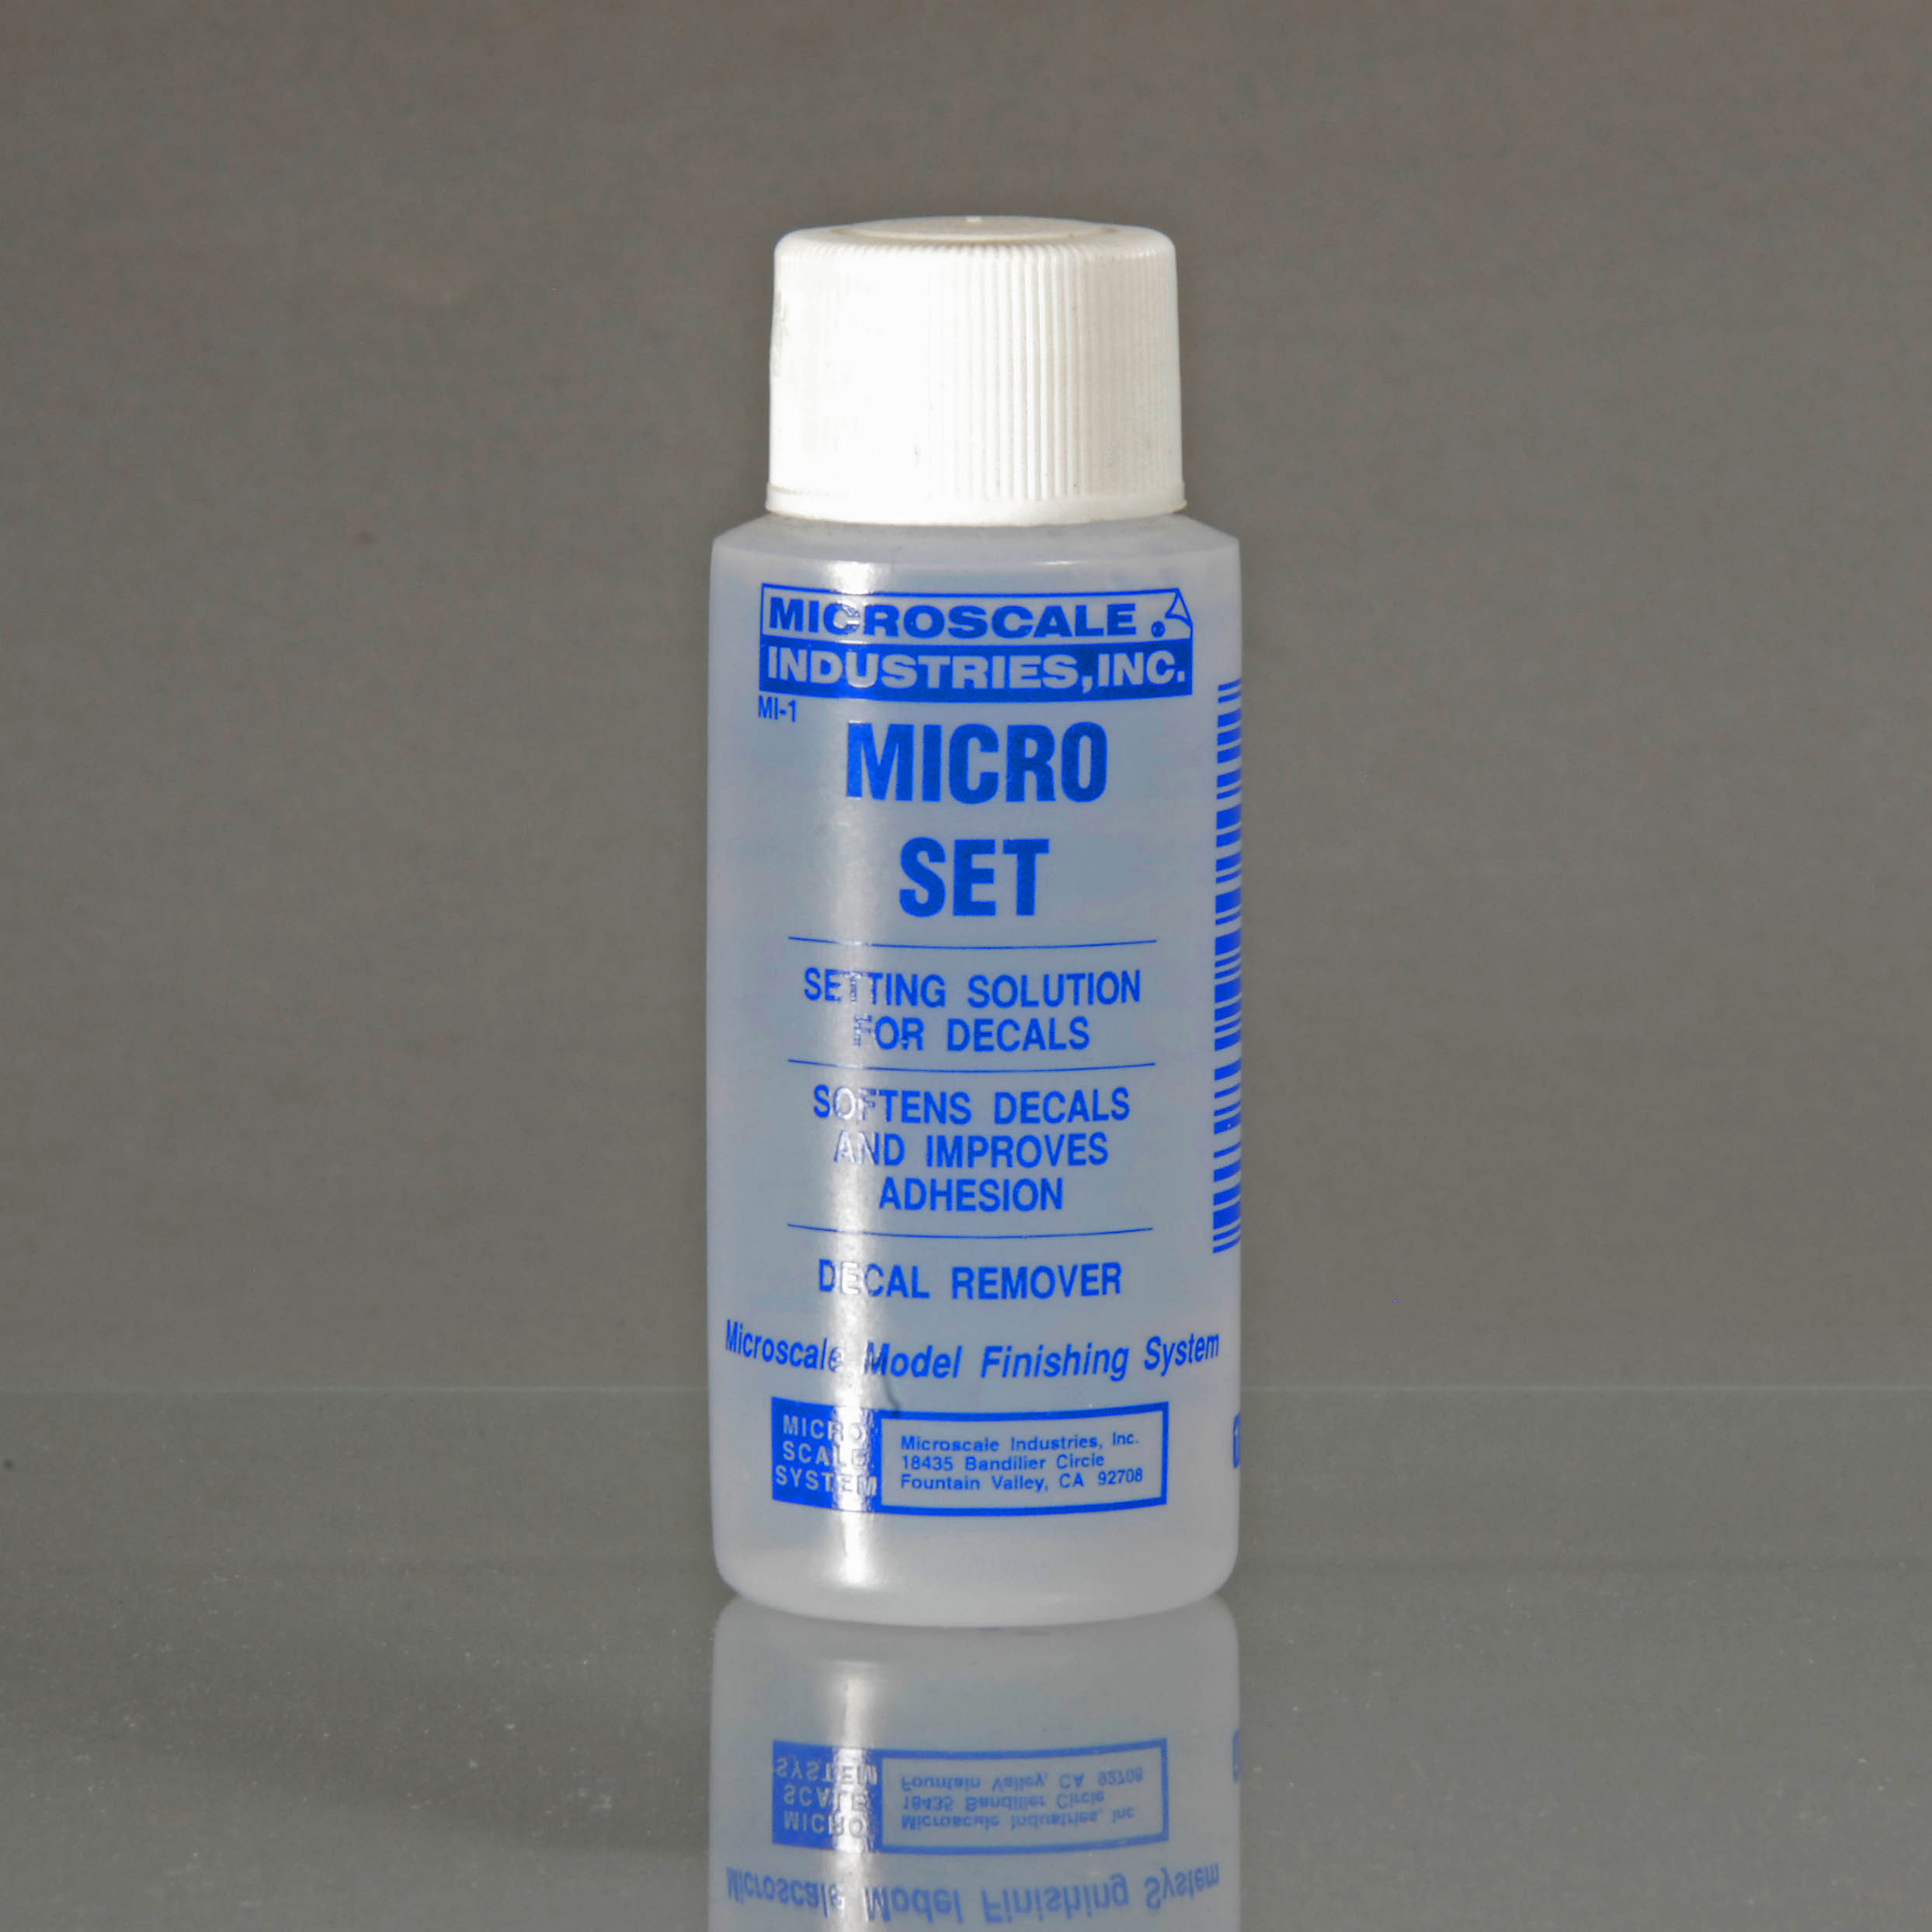 Micro Set - Setting Solution